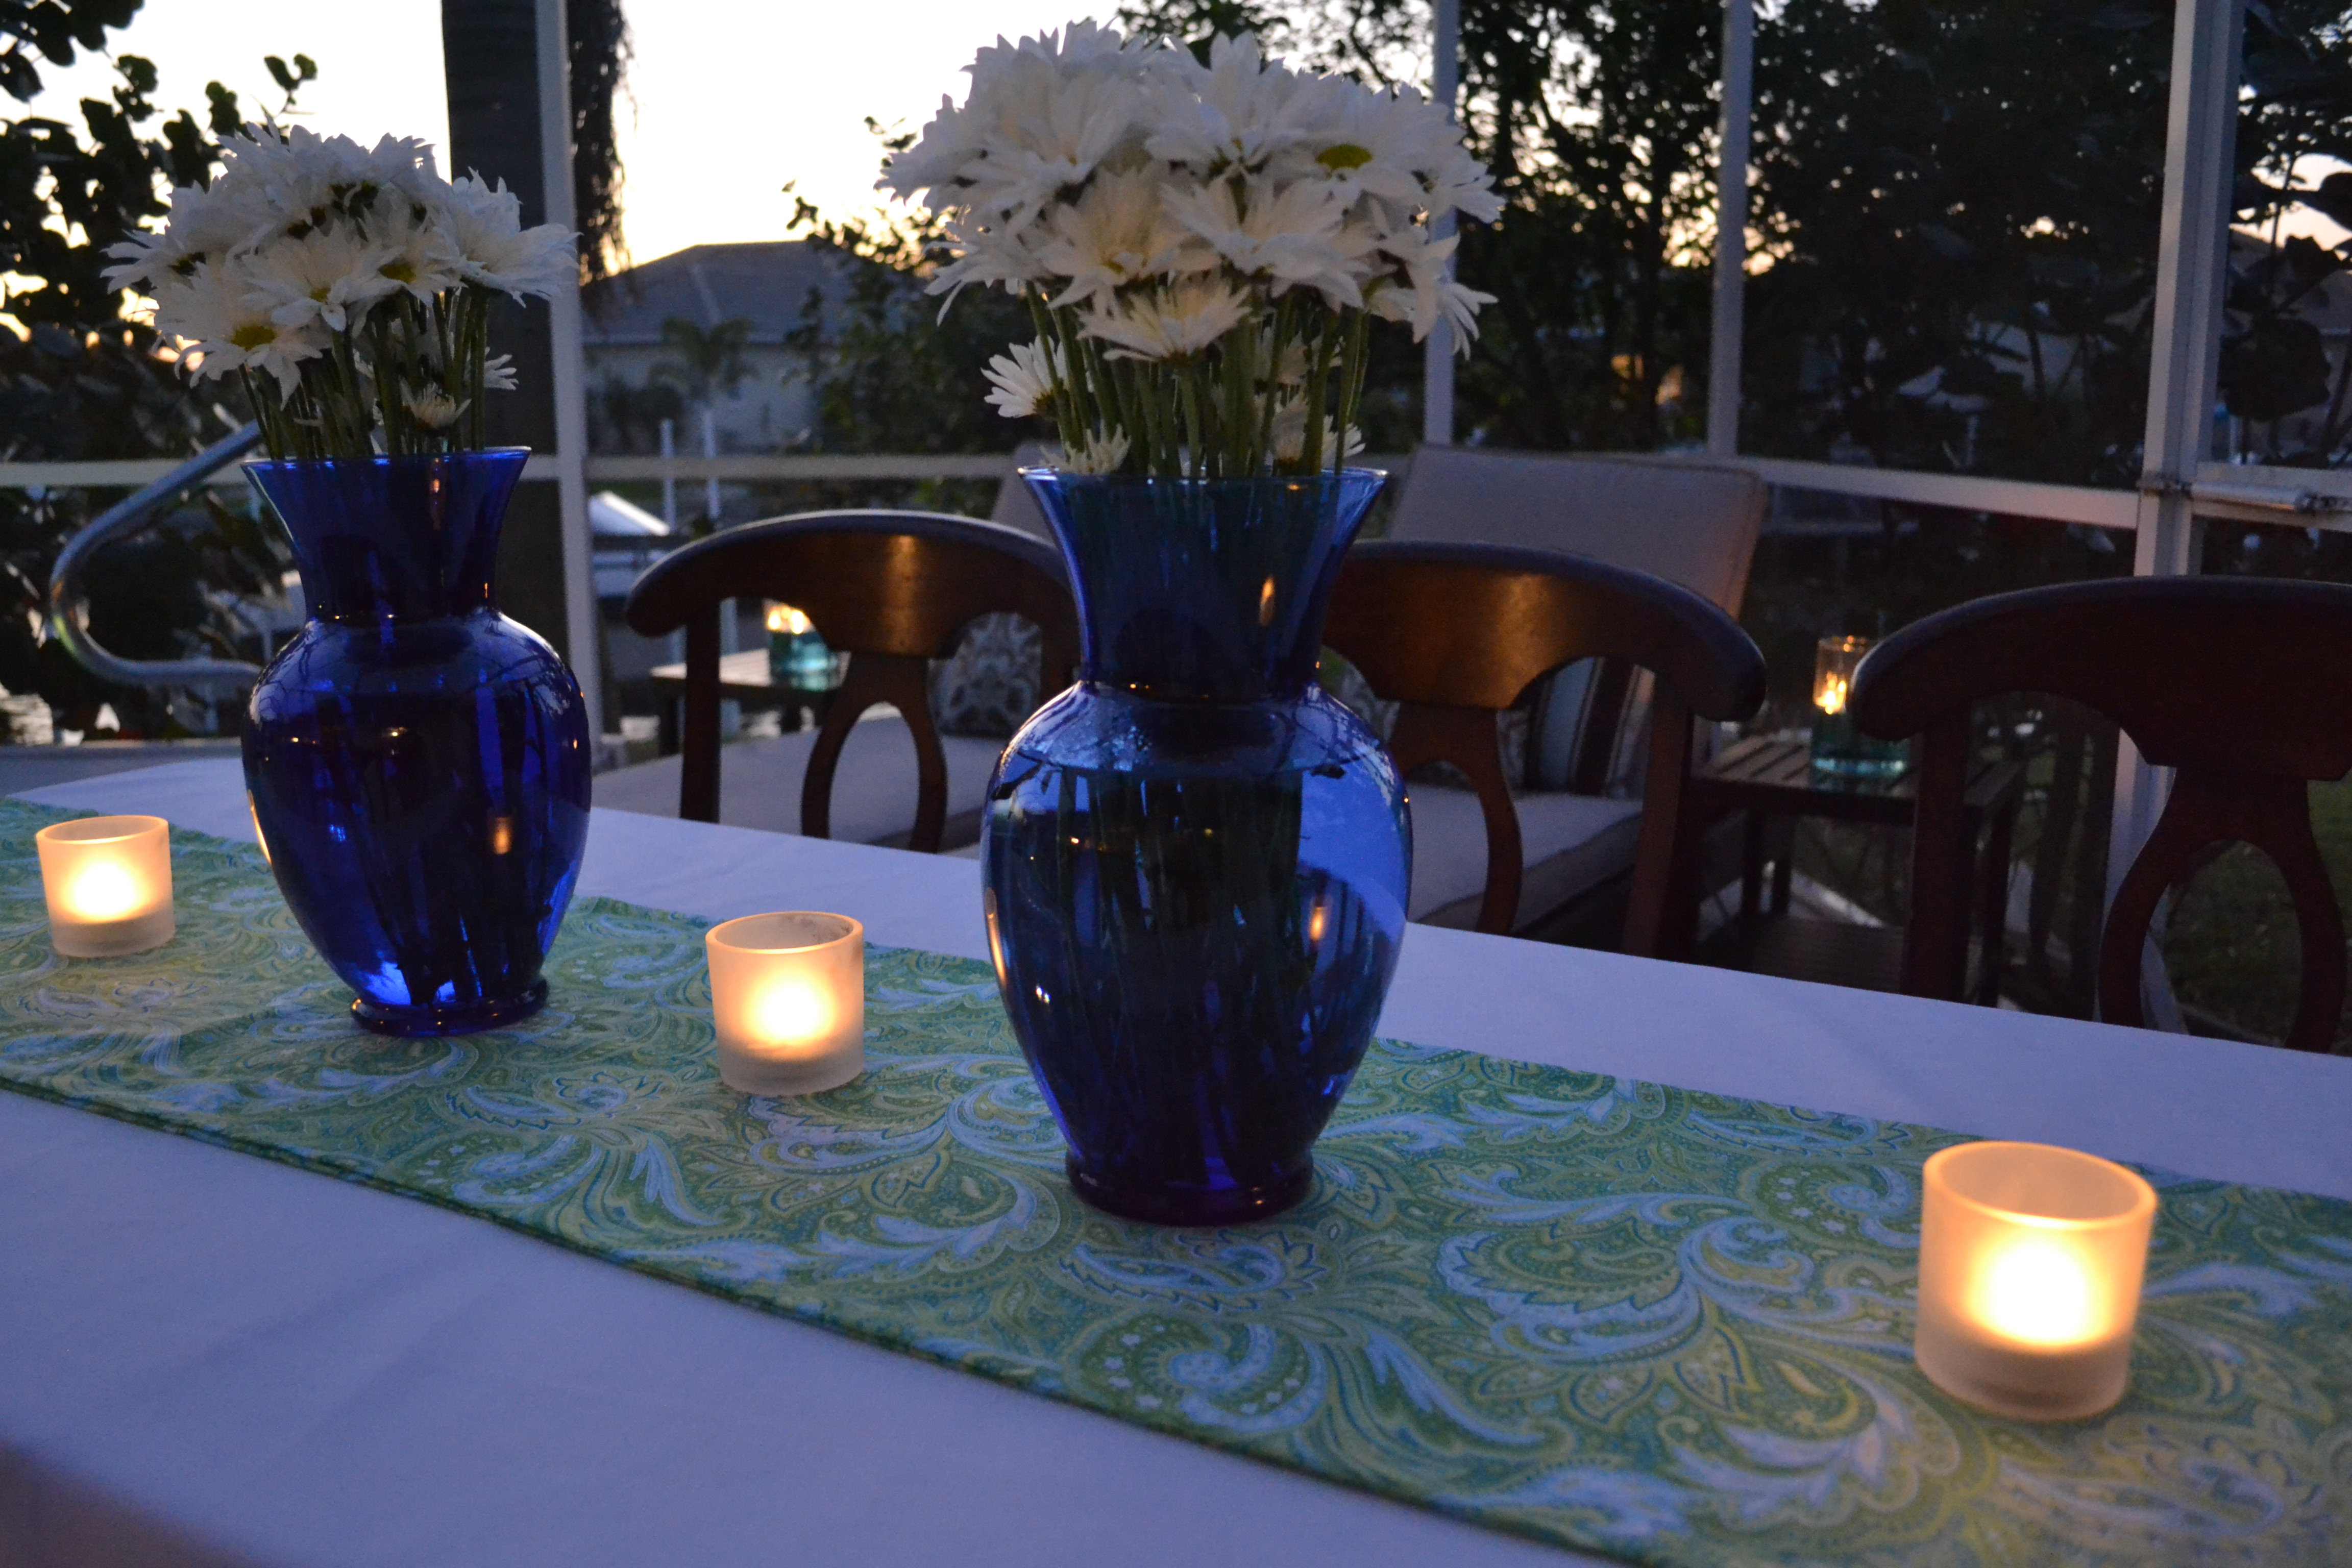 The Paisley Fabric For This Table Runner Cost Just A Few Dollars And Looks  Great With